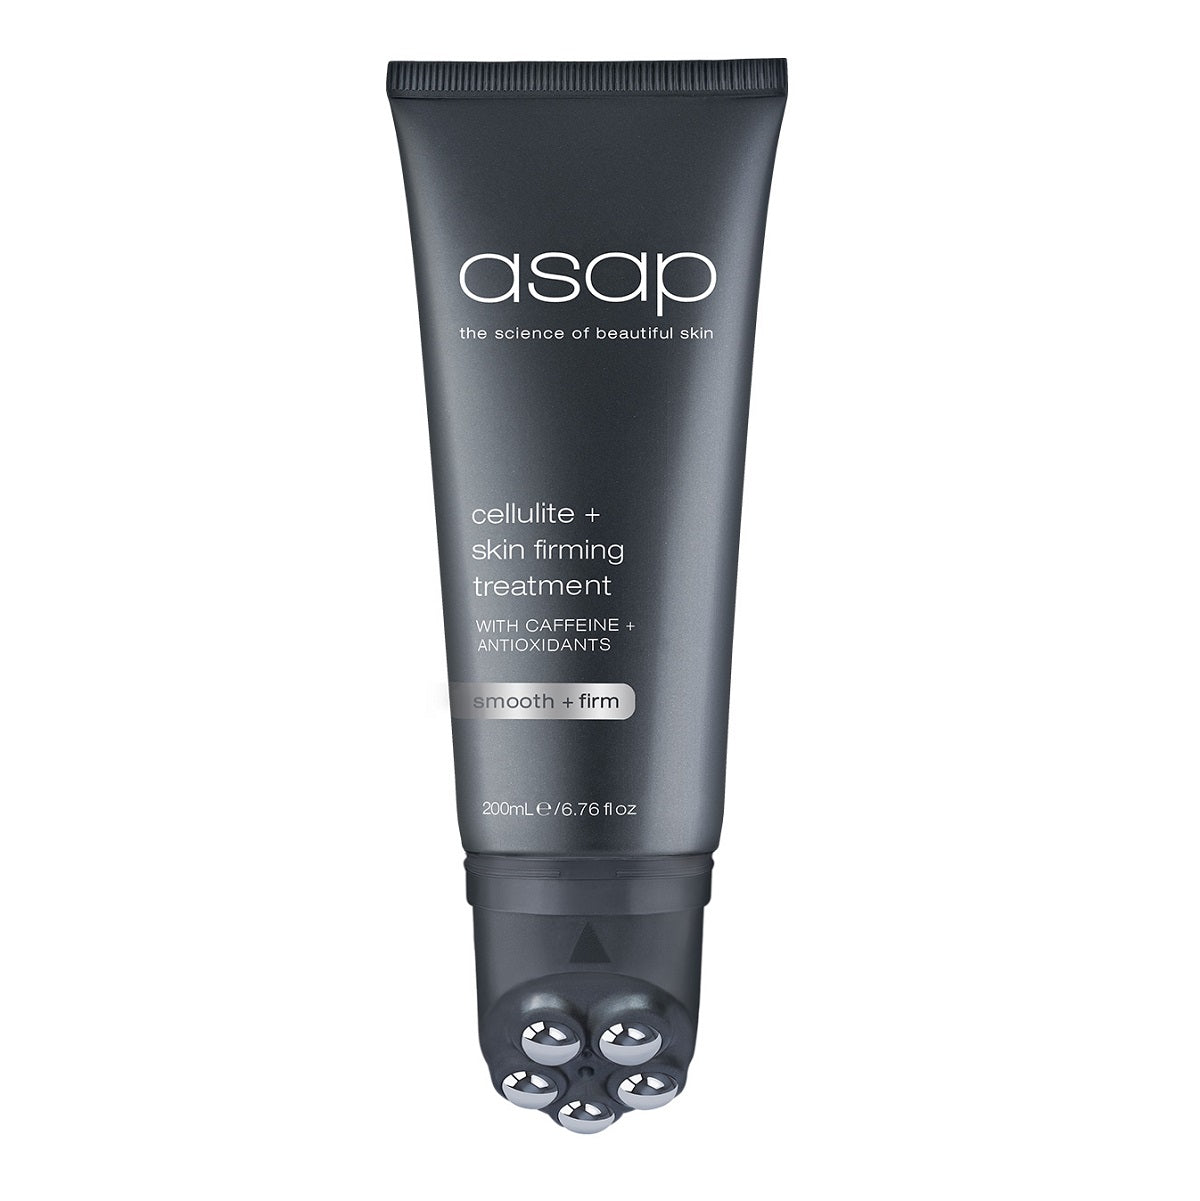 ASAP Cellulite + Skin Firming Treatment